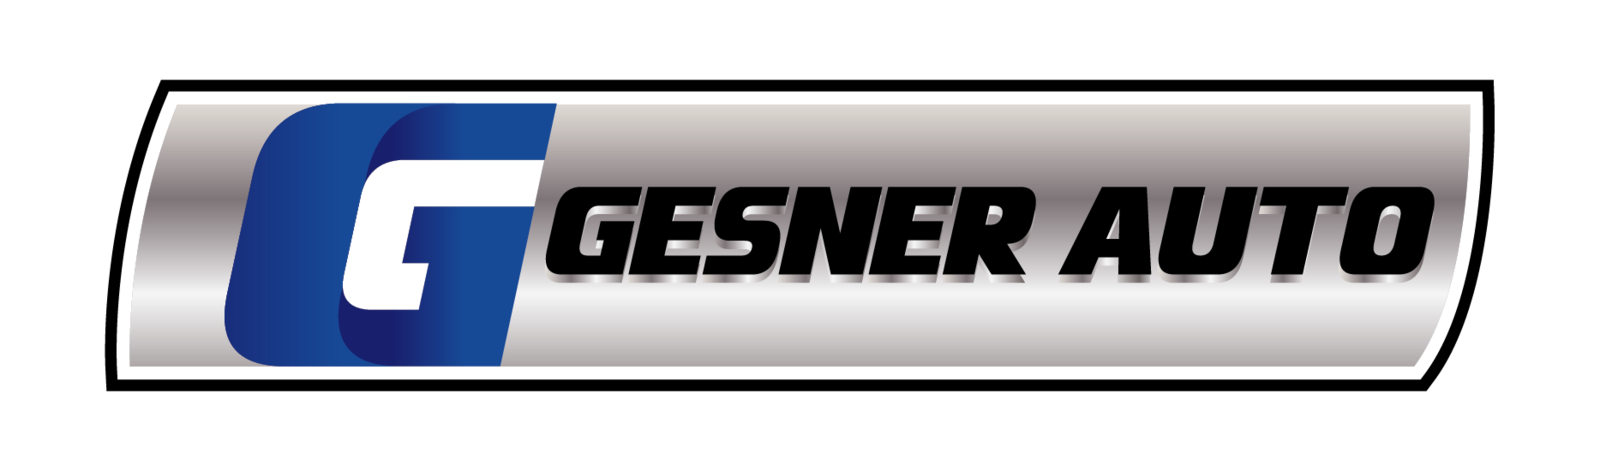 Gesner Auto Sales - Taunton, MA: Read Consumer reviews, Browse Used and New Cars for Sale